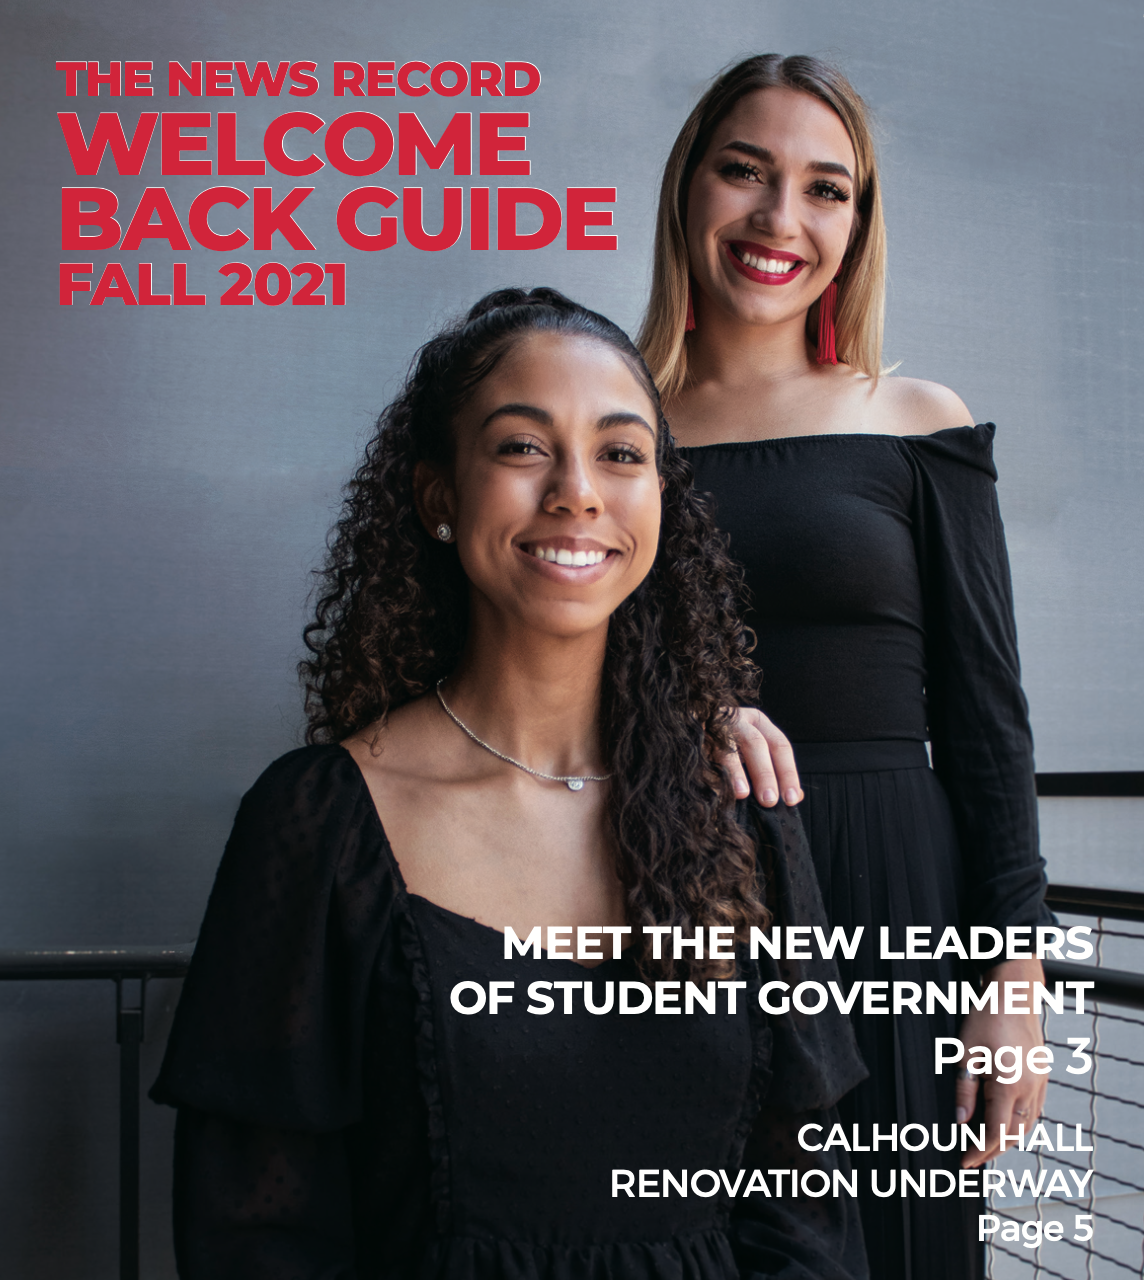 The News Record Welcome Back Guide Fall 2021